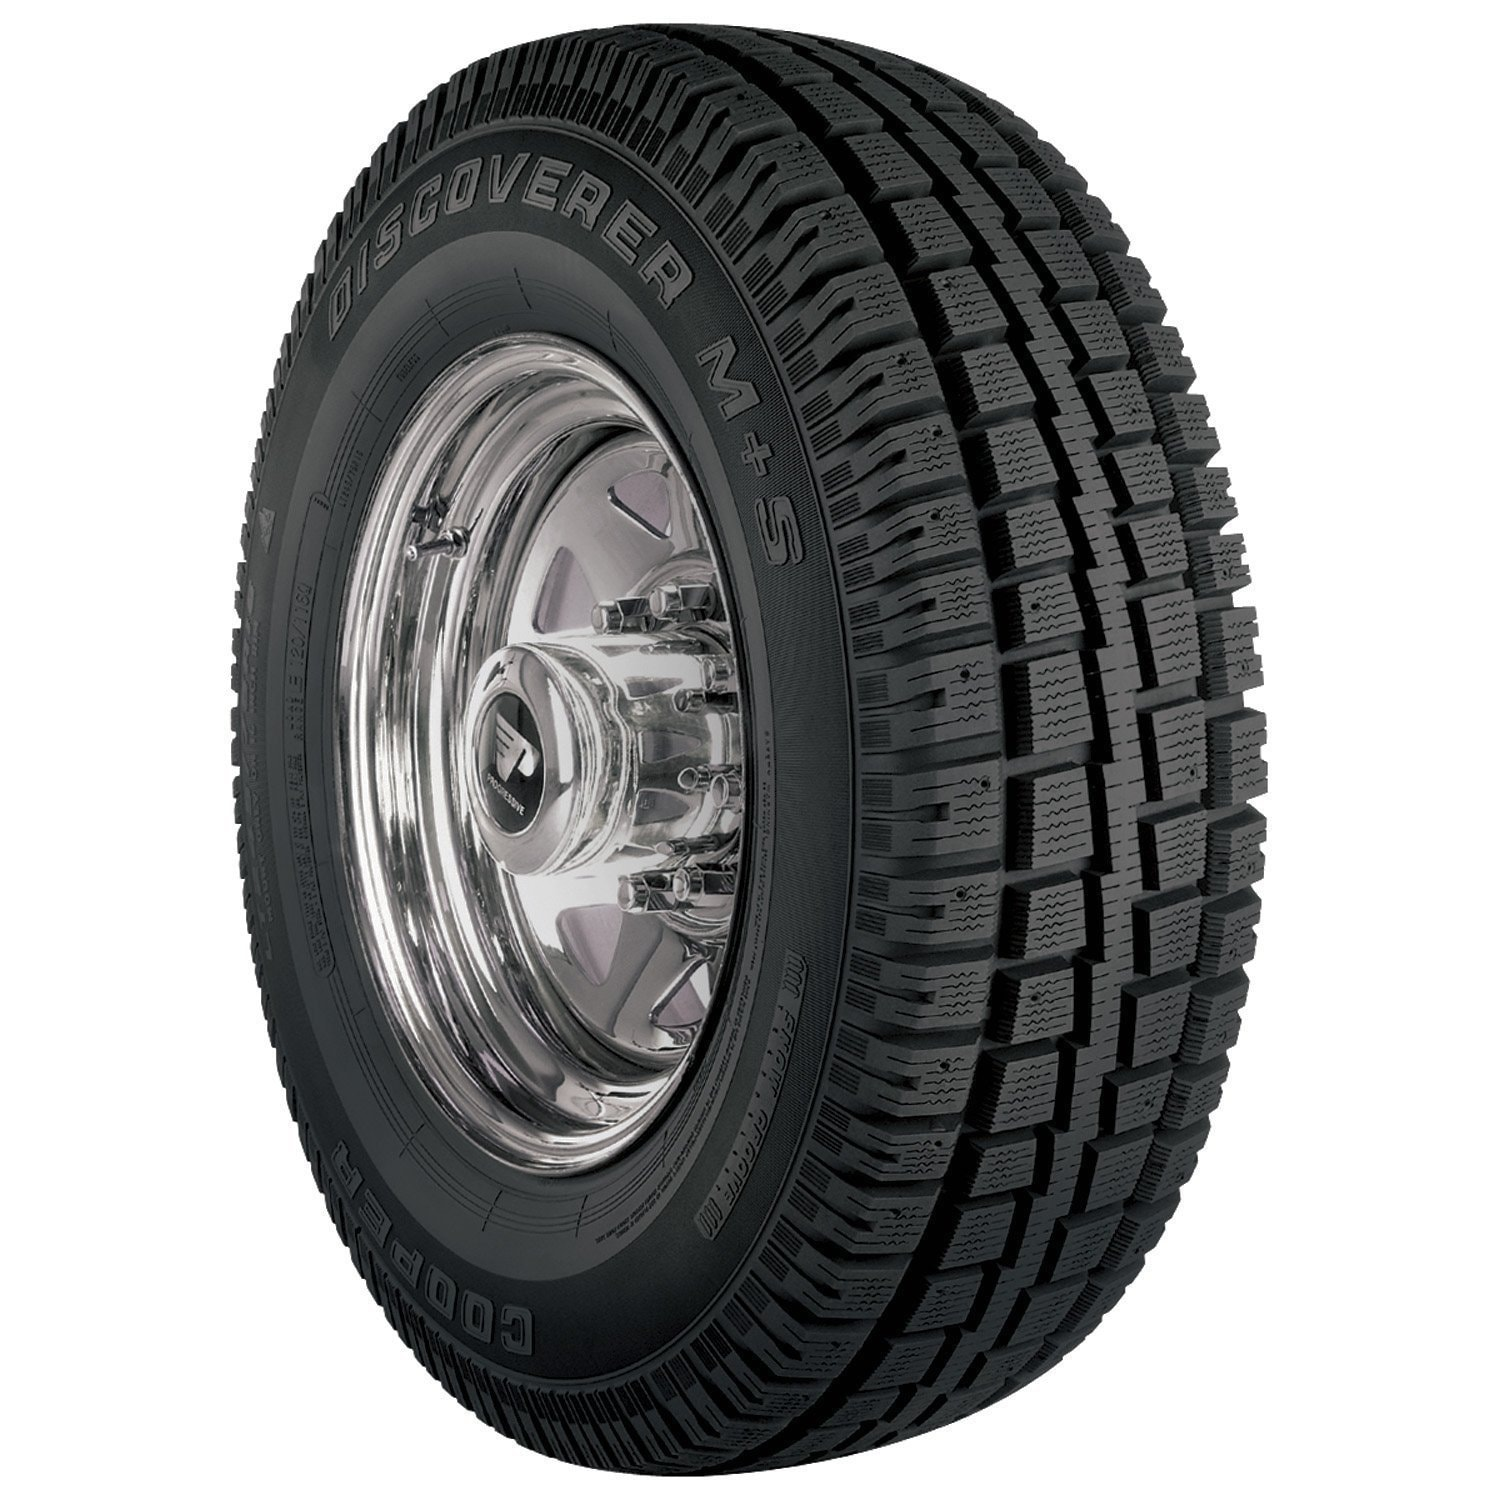 COOPER Discoverer M+S Winter Tire - LT245/75R16 LRC/6 ply...